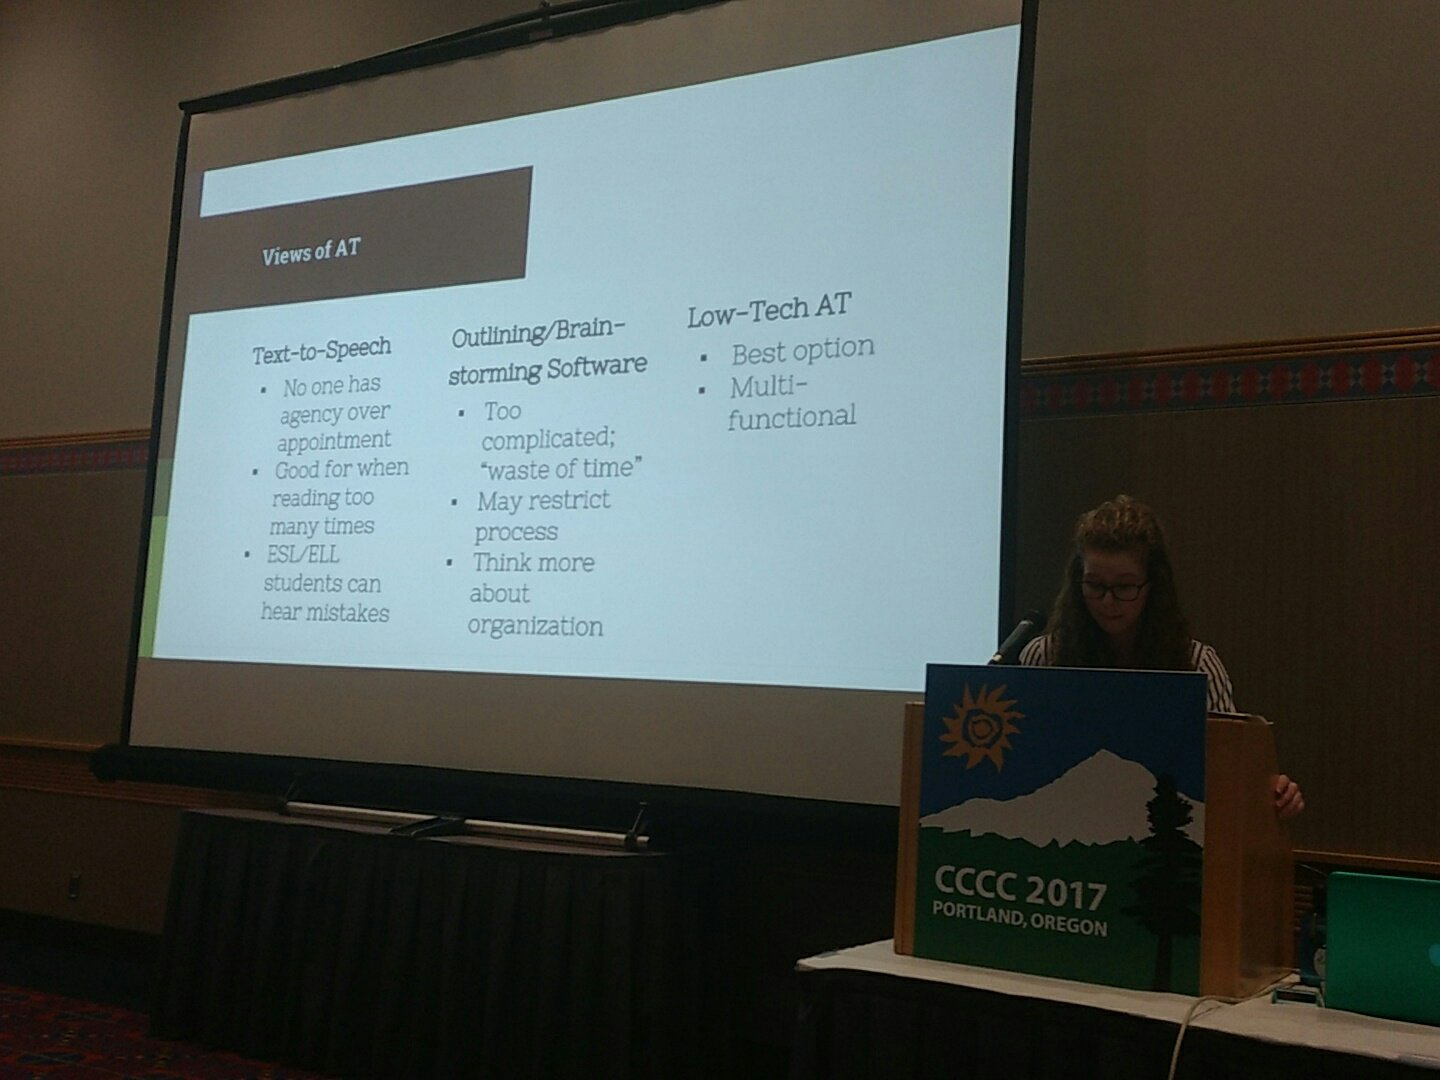 #4c17 #a28 https://t.co/9I3Ly1O8P1